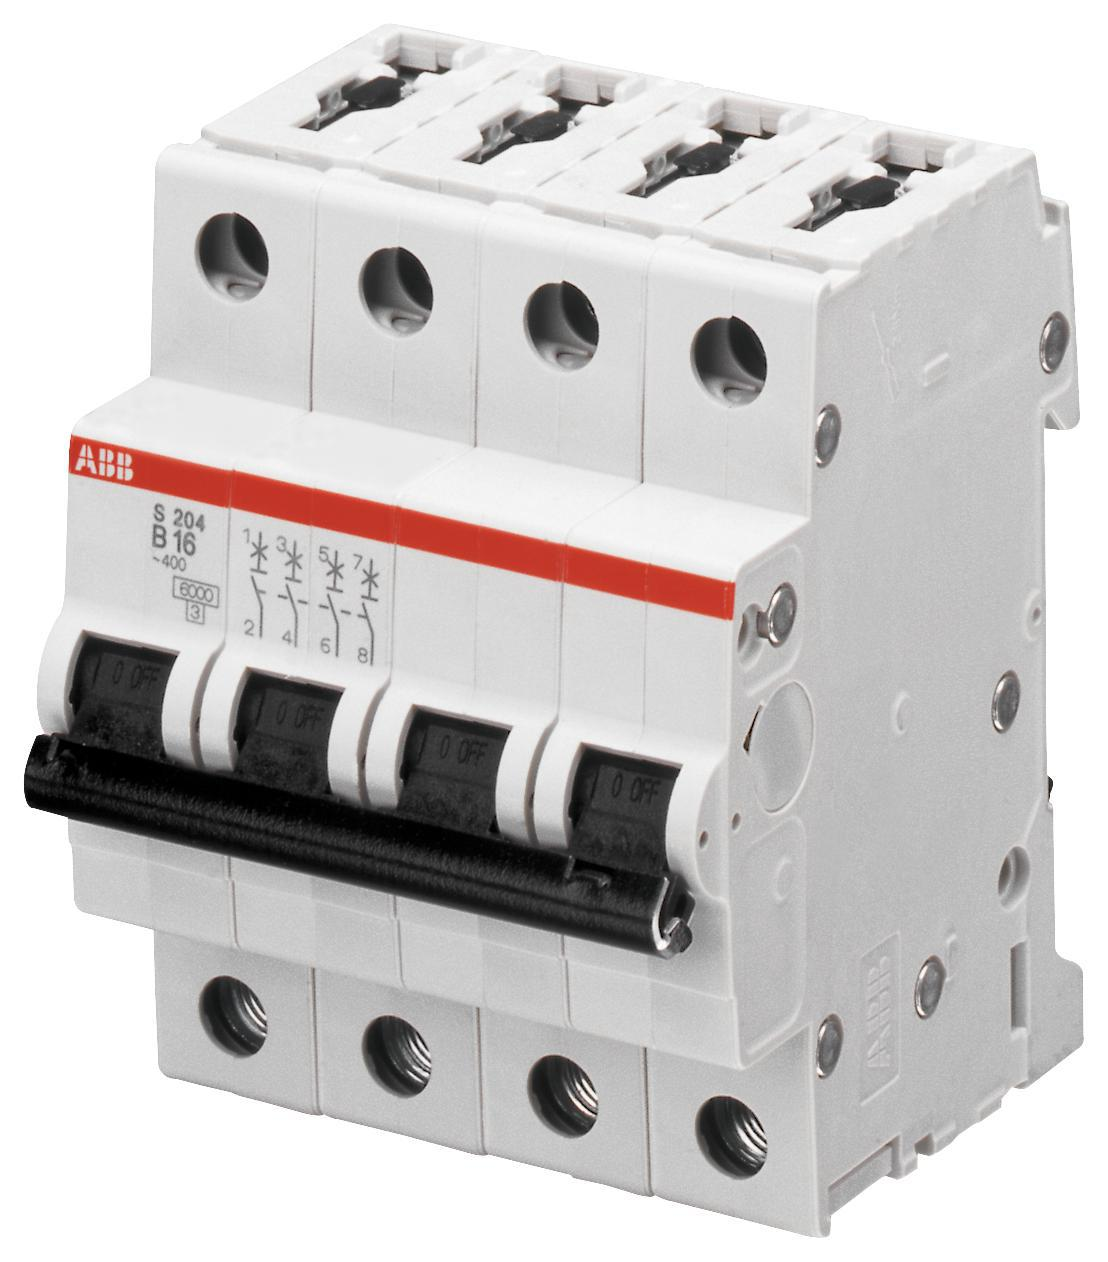 Abb S204 C63 Circuit Breaker Thermal Mag 4 Pole 63a